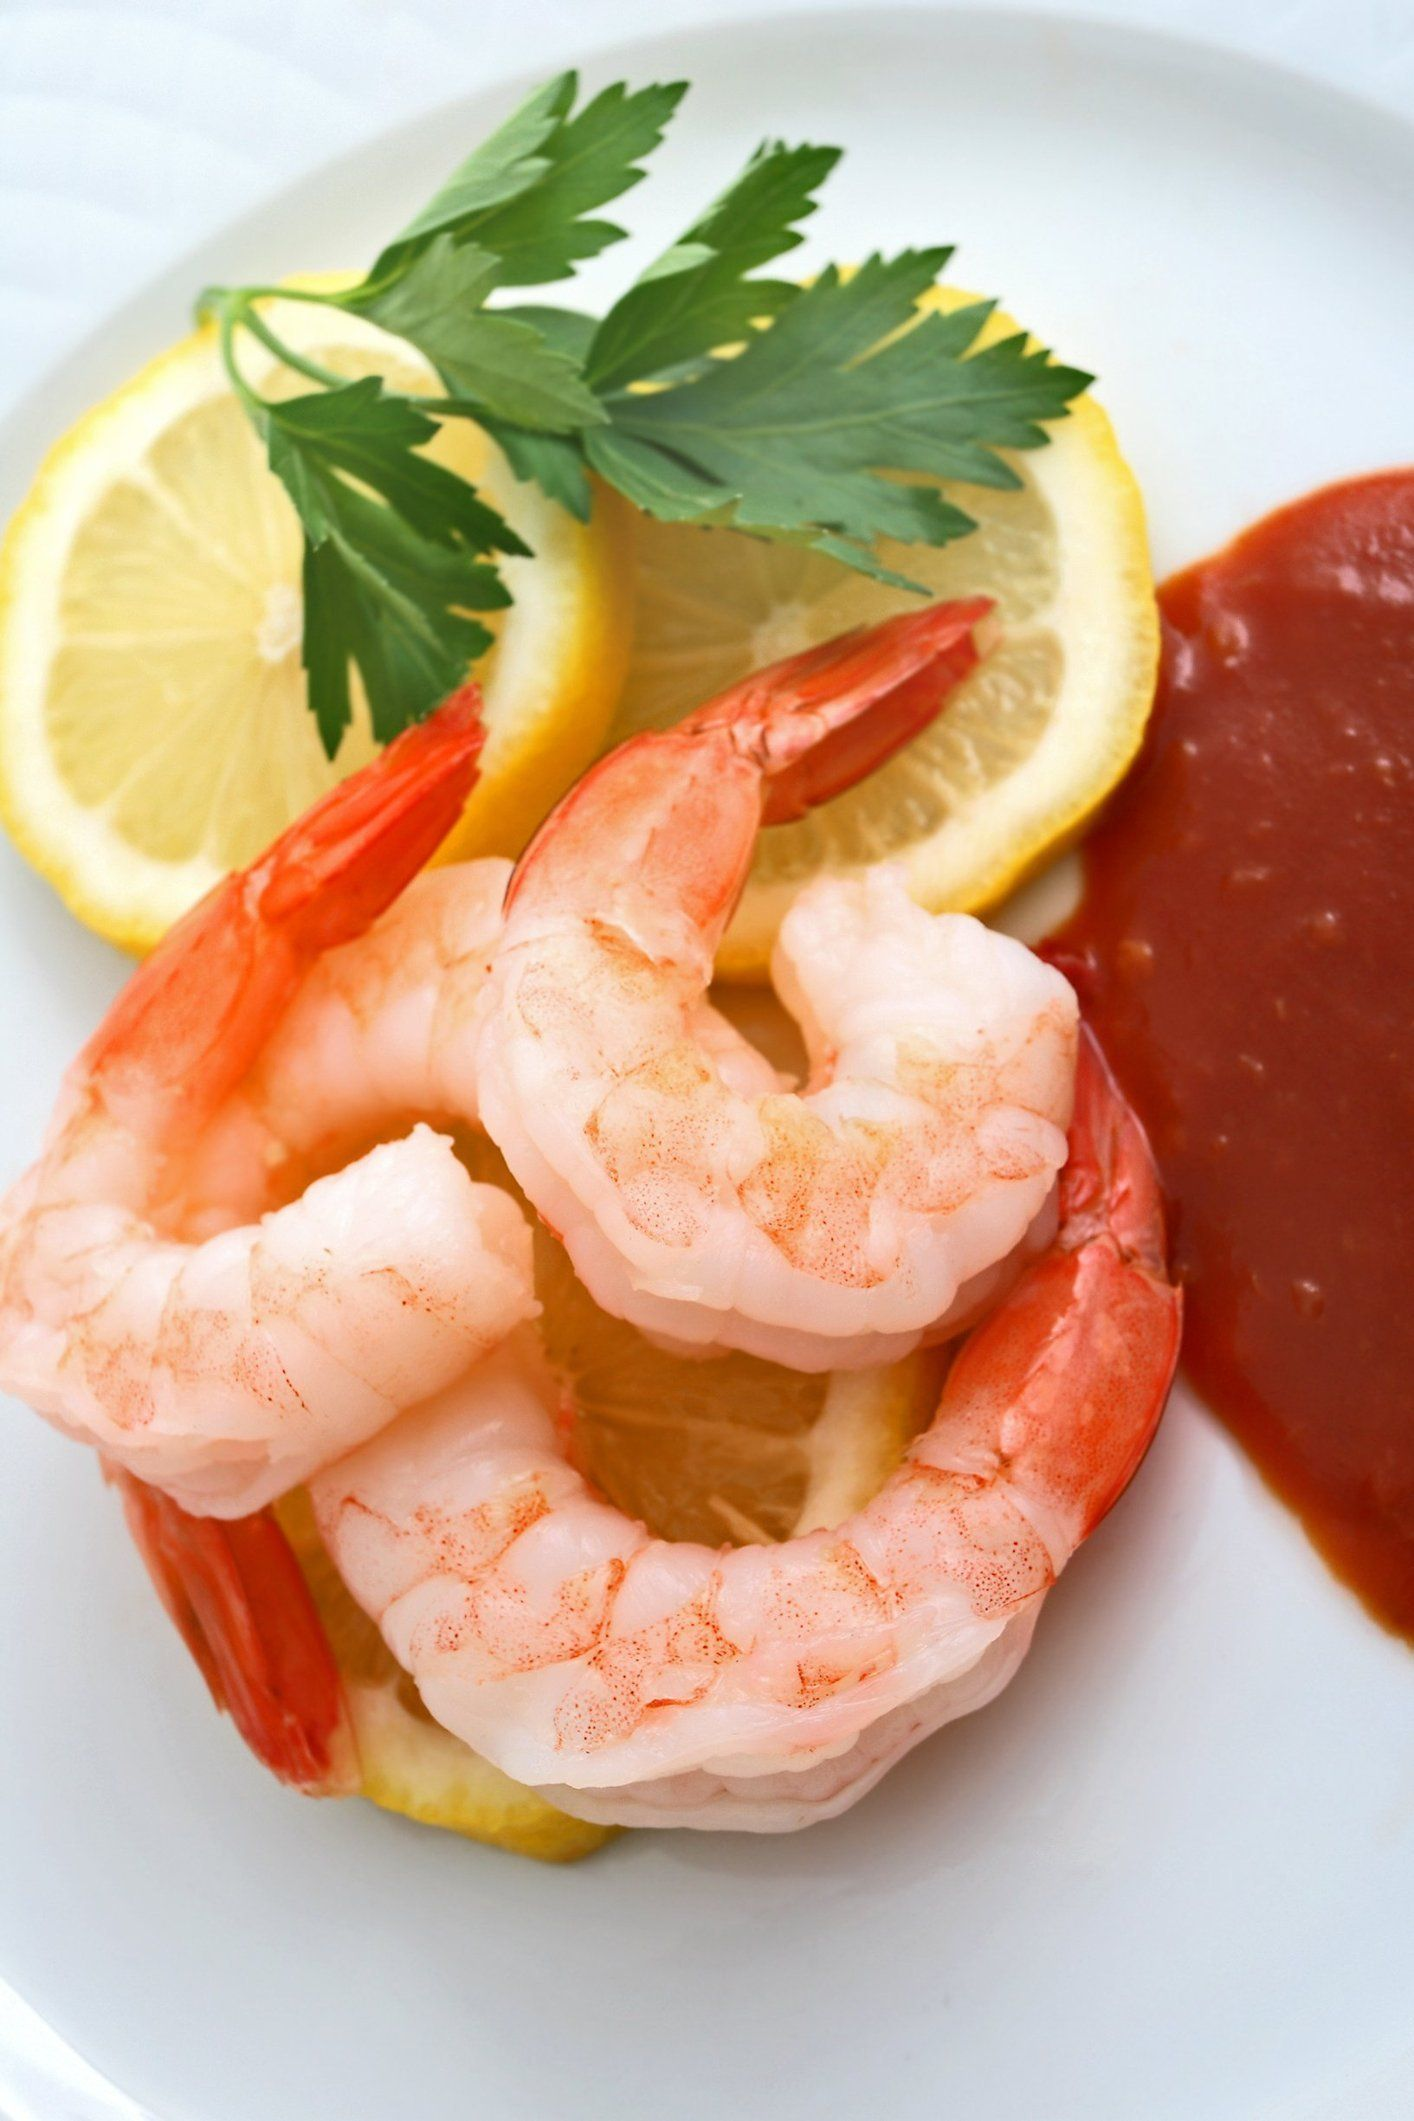 My Favorite Way to Cook Shrimp #boiledshrimp